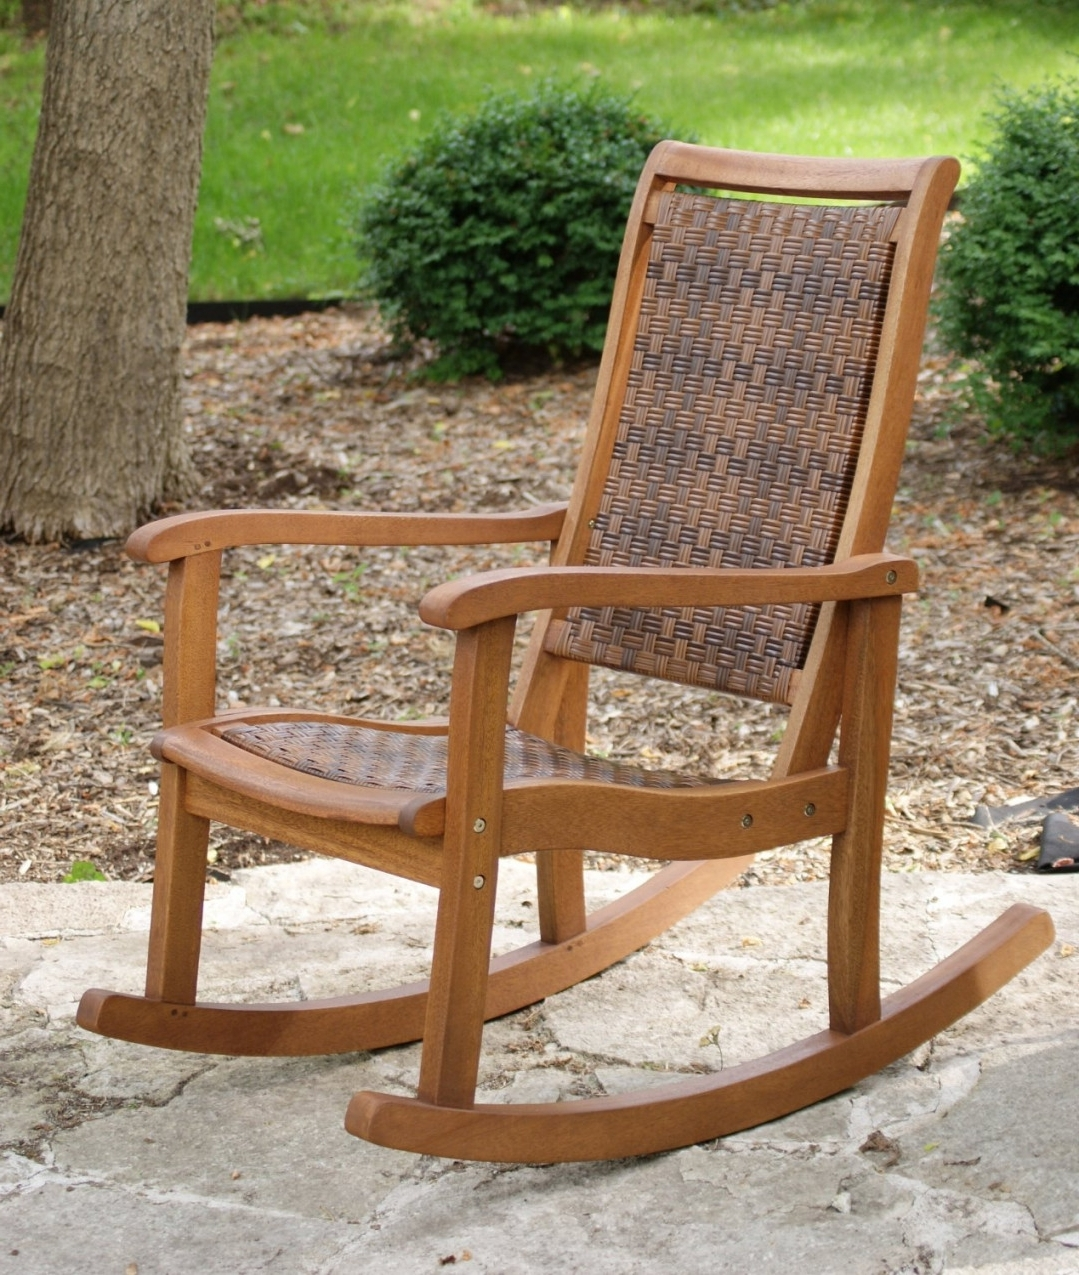 Great Patio Rocking Chairs : Spectacular And Sensational Patio Regarding Fashionable Wooden Patio Rocking Chairs (View 4 of 15)